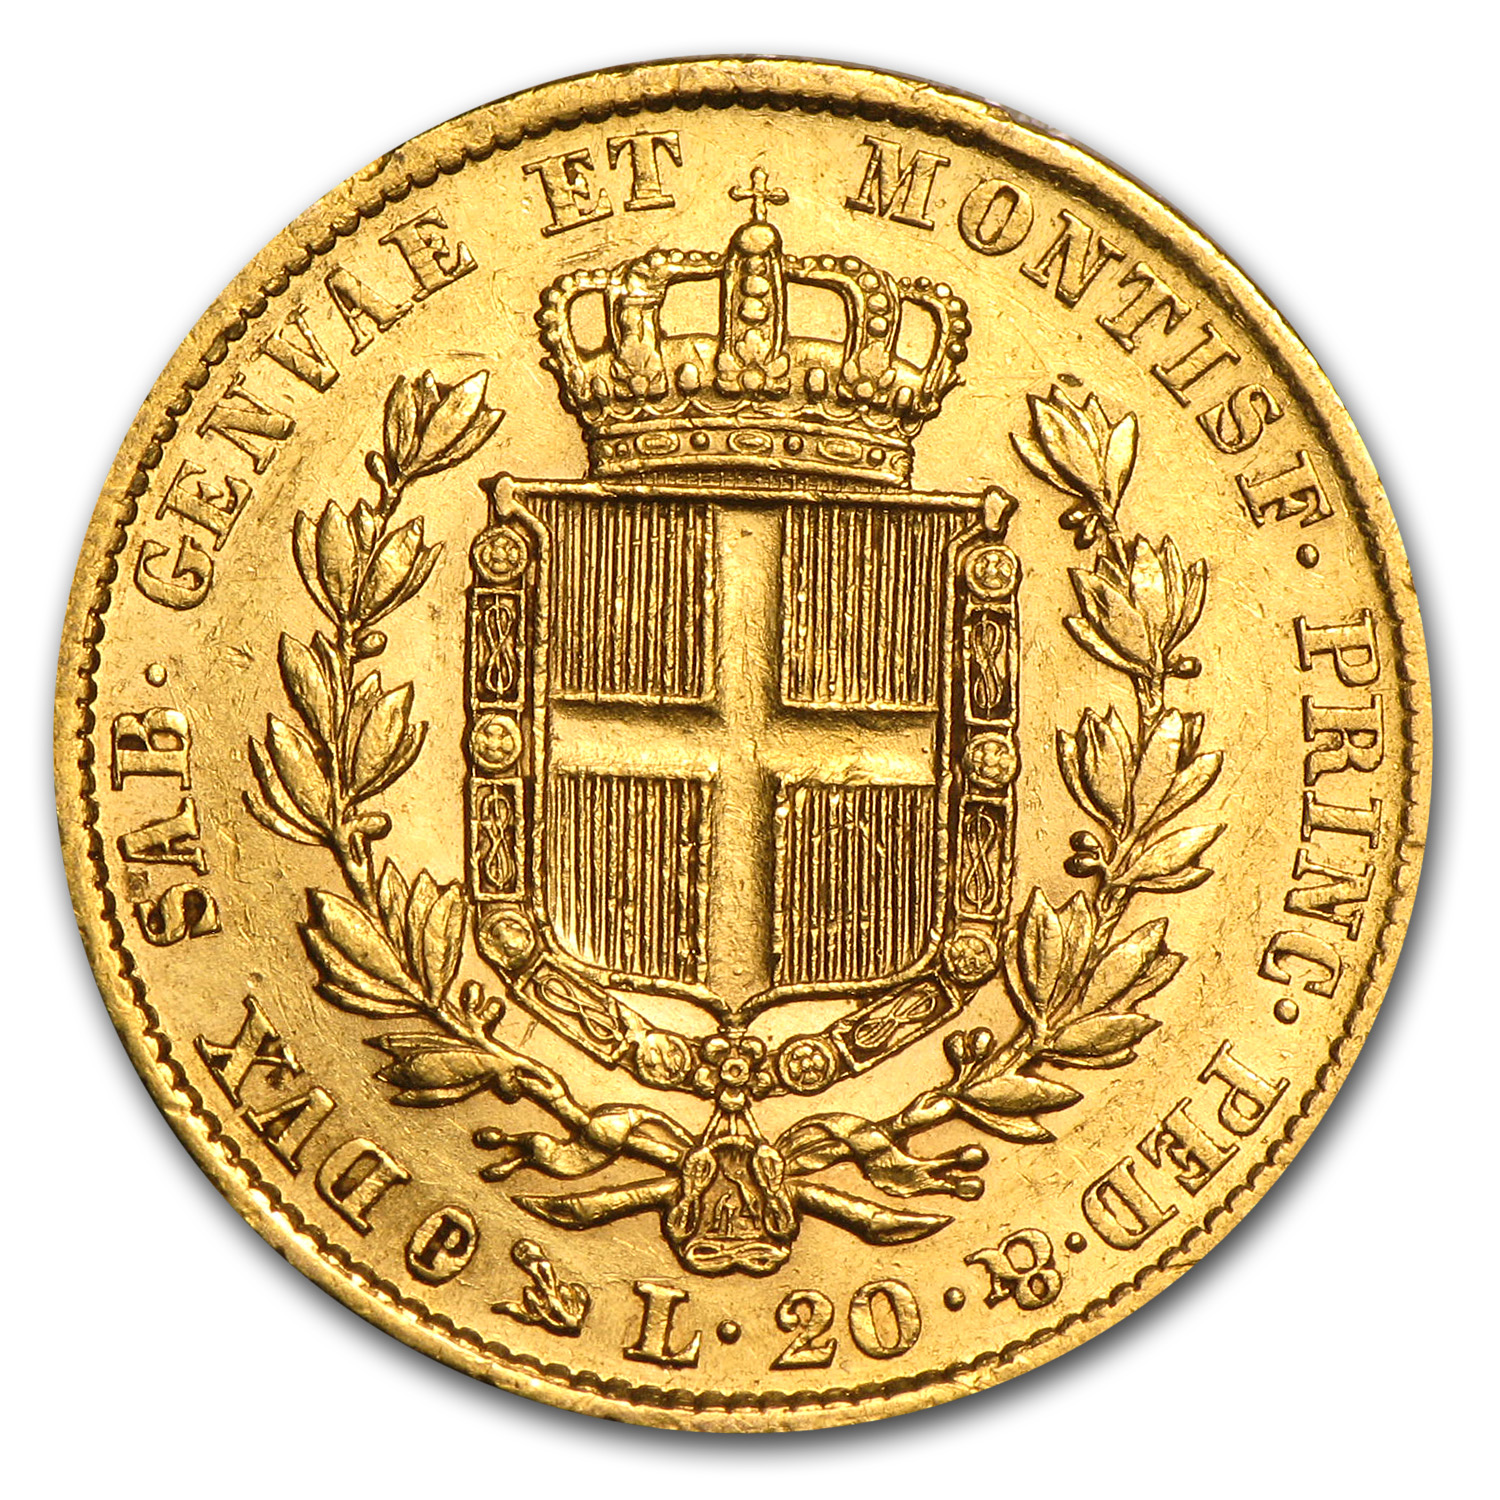 Sardinia Gold 20 Lire XF or Better (AGW .1867)